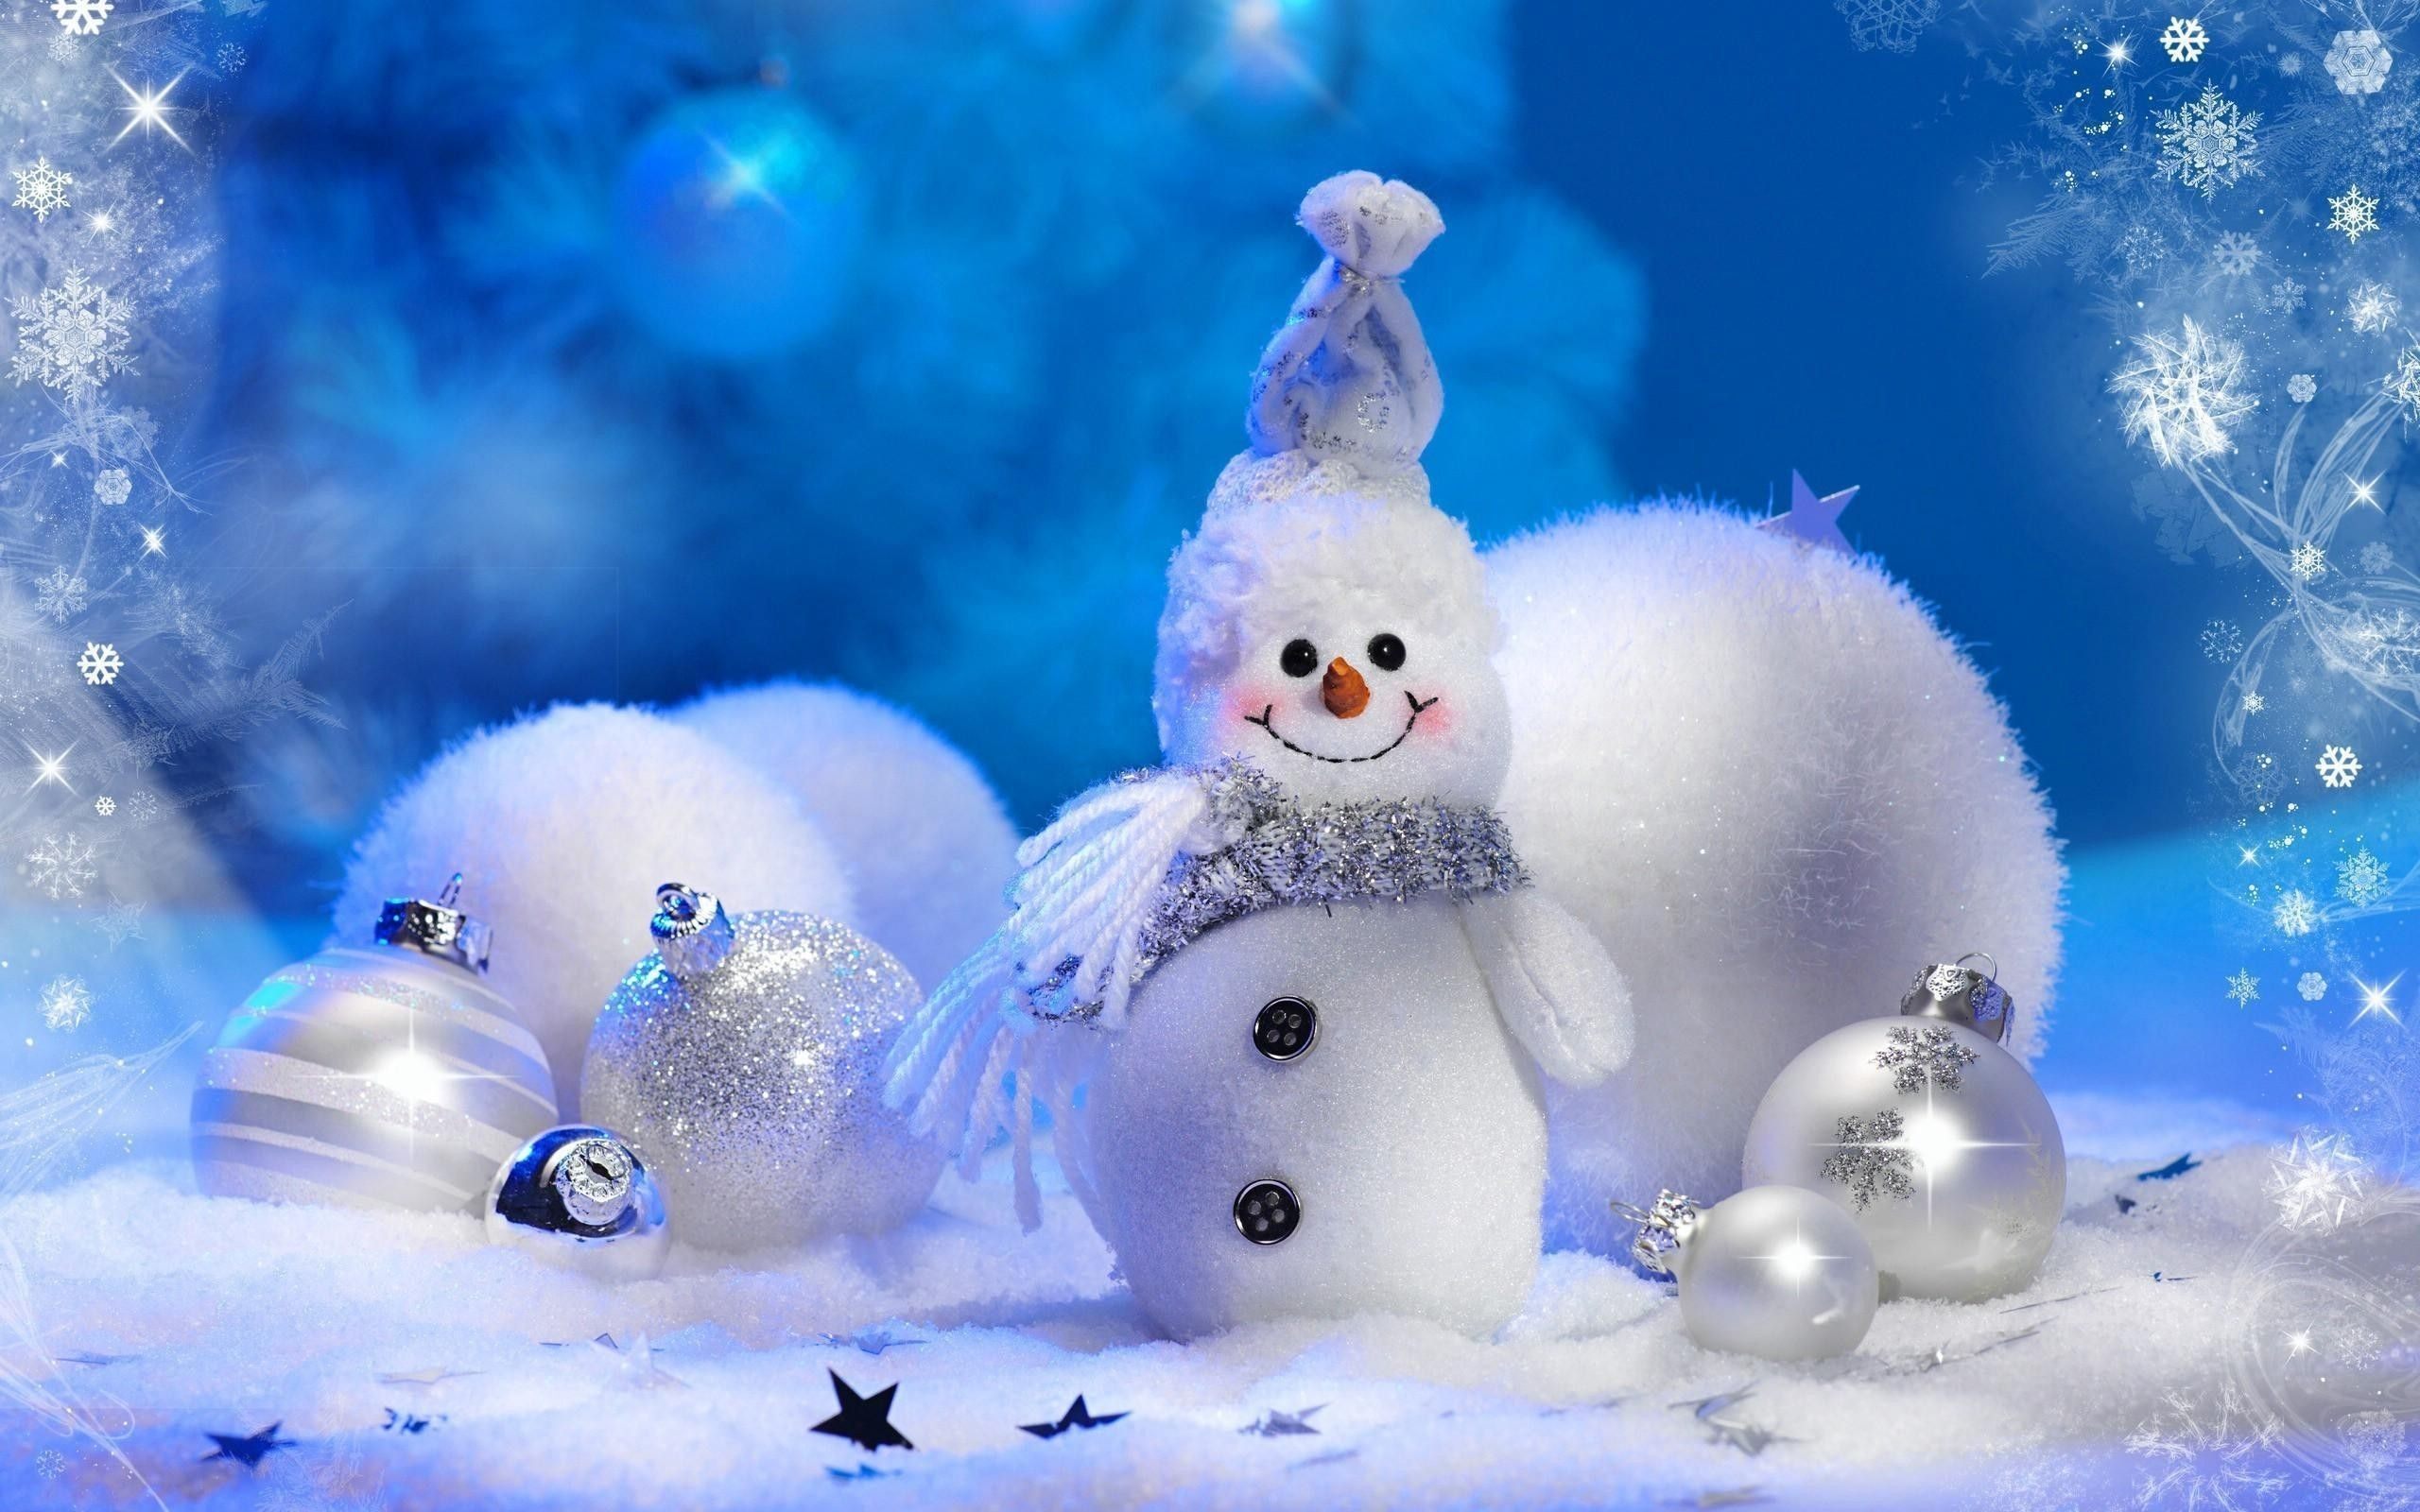 Adorable Snow Wallpapers in High Quality, Cowal Fragino. 0.408  MB. Snow Wallpaper